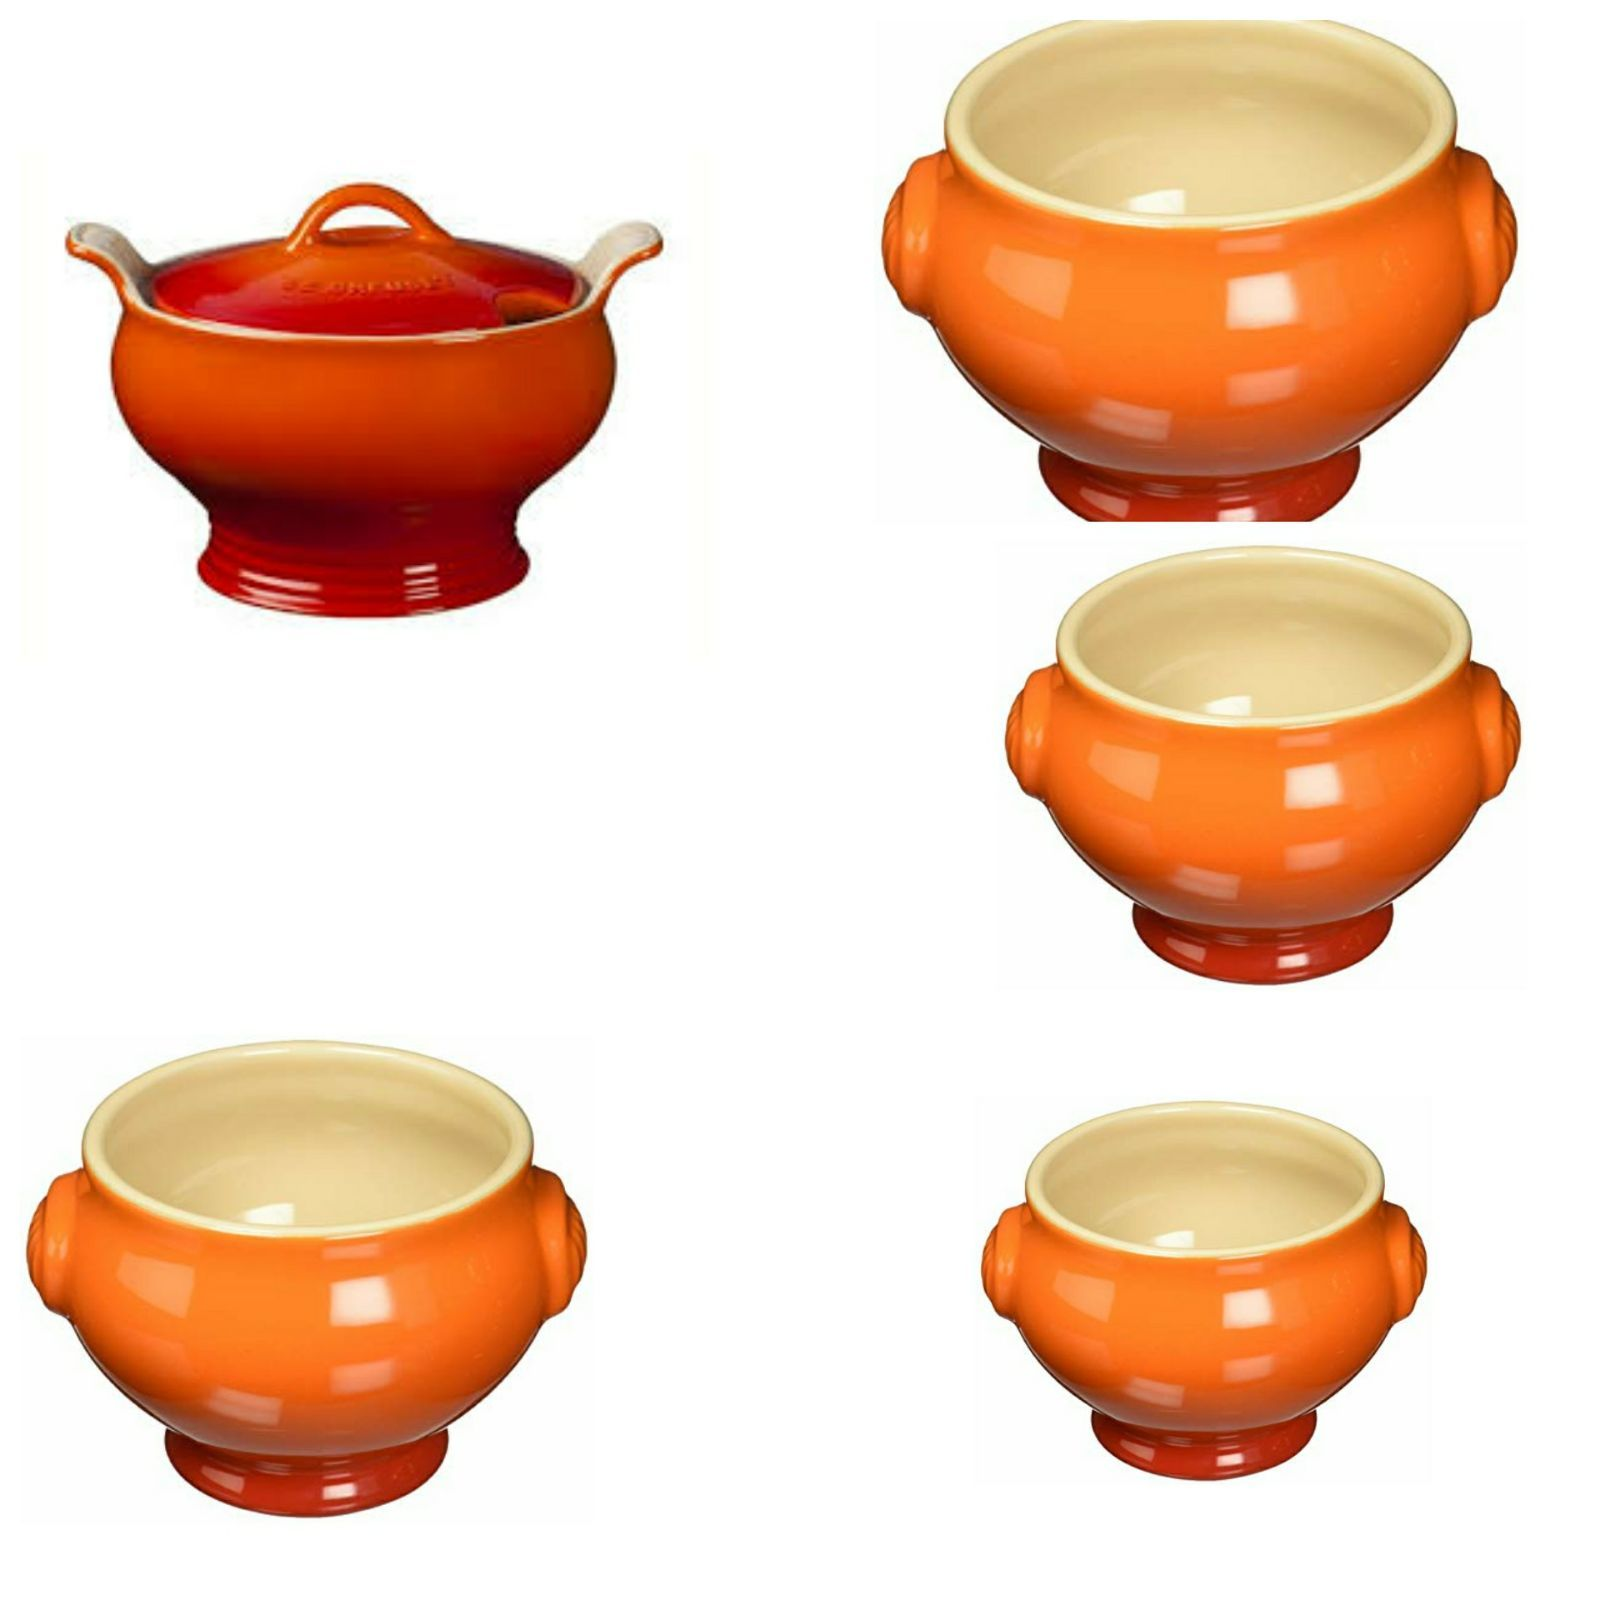 LE CREUSET HERITAGE TUREEN 6PC SET. COLOR FLAME ORAGE